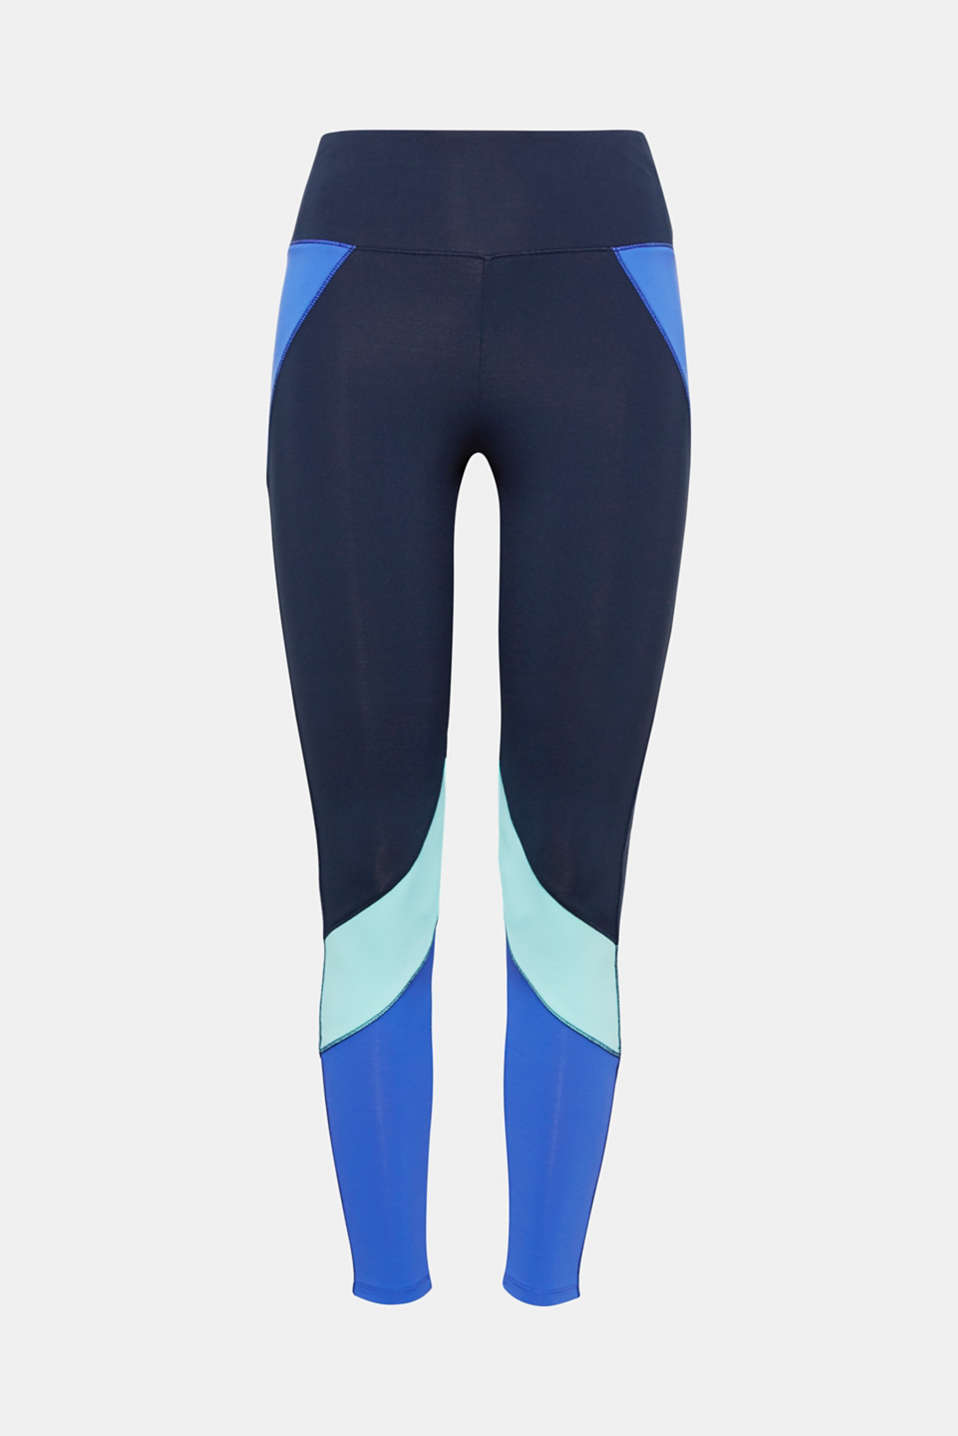 Your workout will take care of itself in these active leggings with an E-DRY finish, blue accents and a logo!